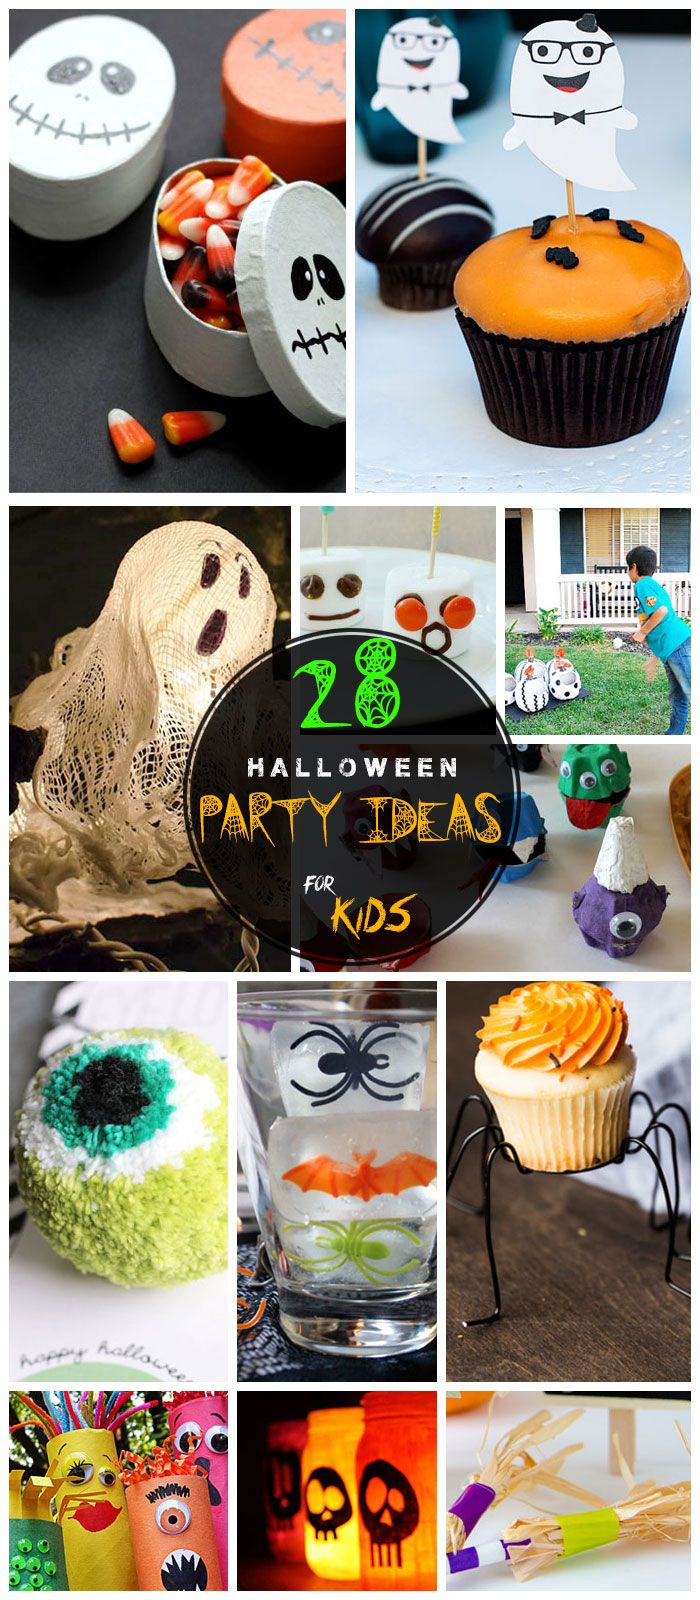 97 best Halloween Party Ideas images on Pinterest